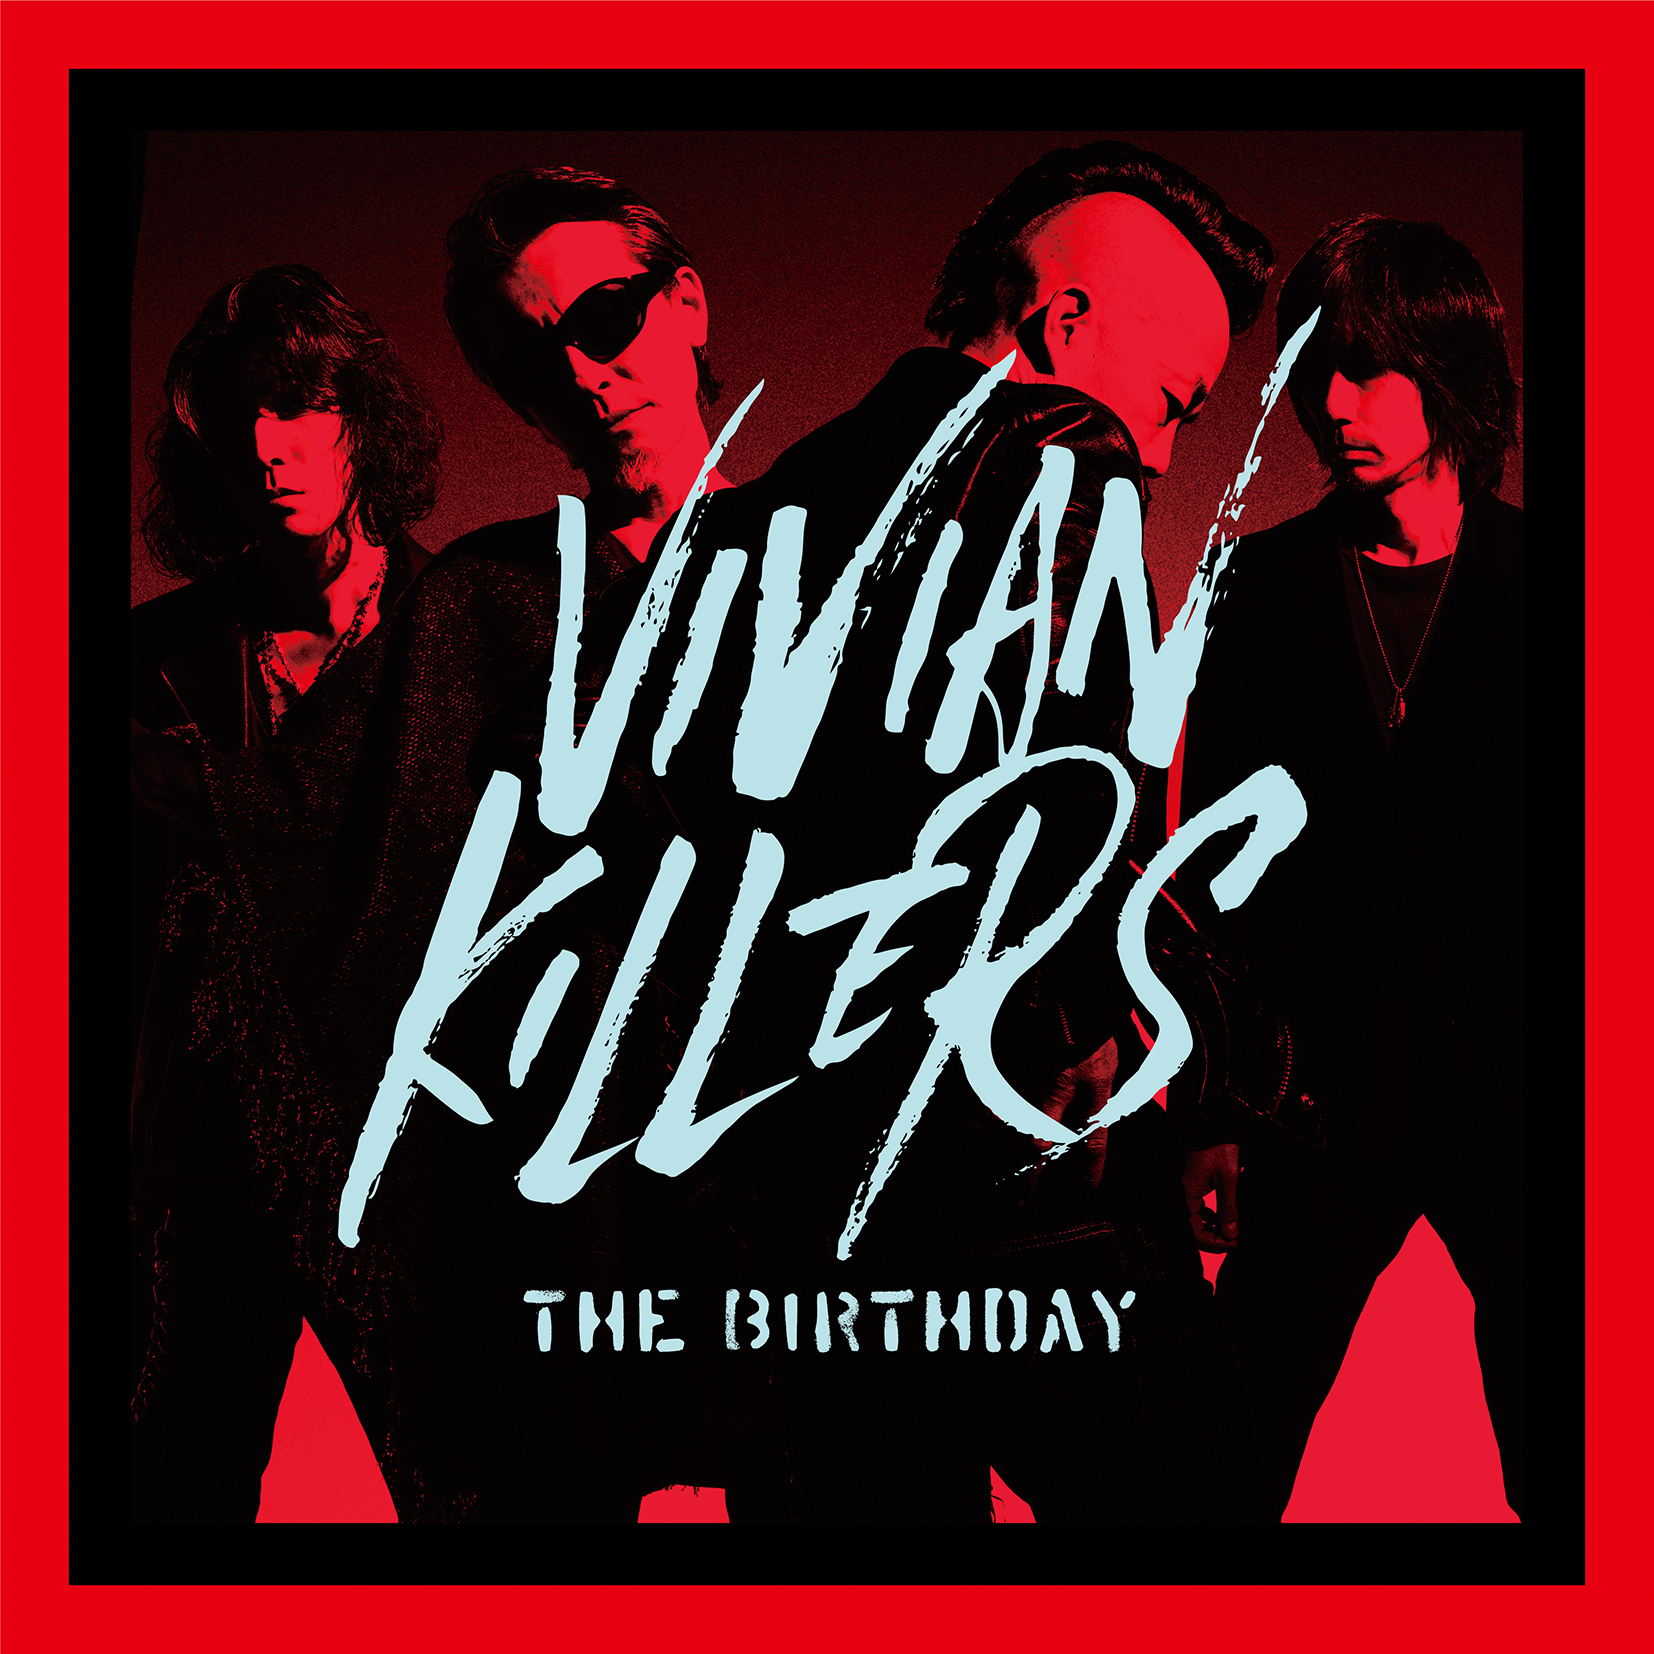 The Birthday 「VIVIAN KILLERS」